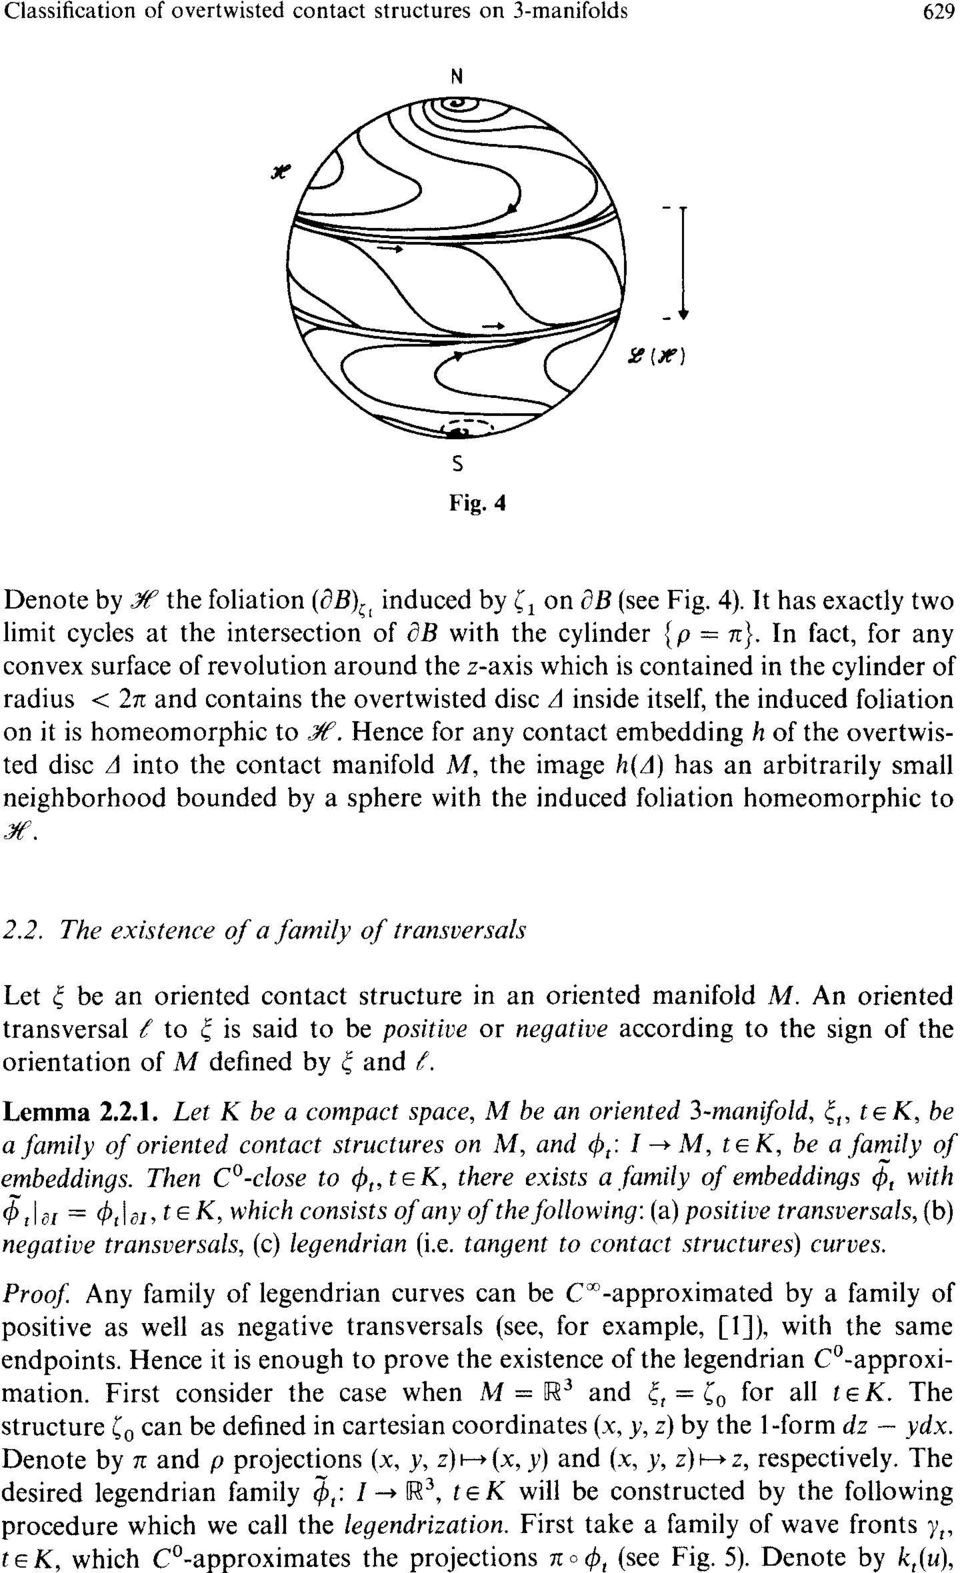 In fact, for any convex surface of revolution around the z-axis which is contained in the cylinder of radius < 27z and contains the overtwisted disc A inside itself, the induced foliation on it is